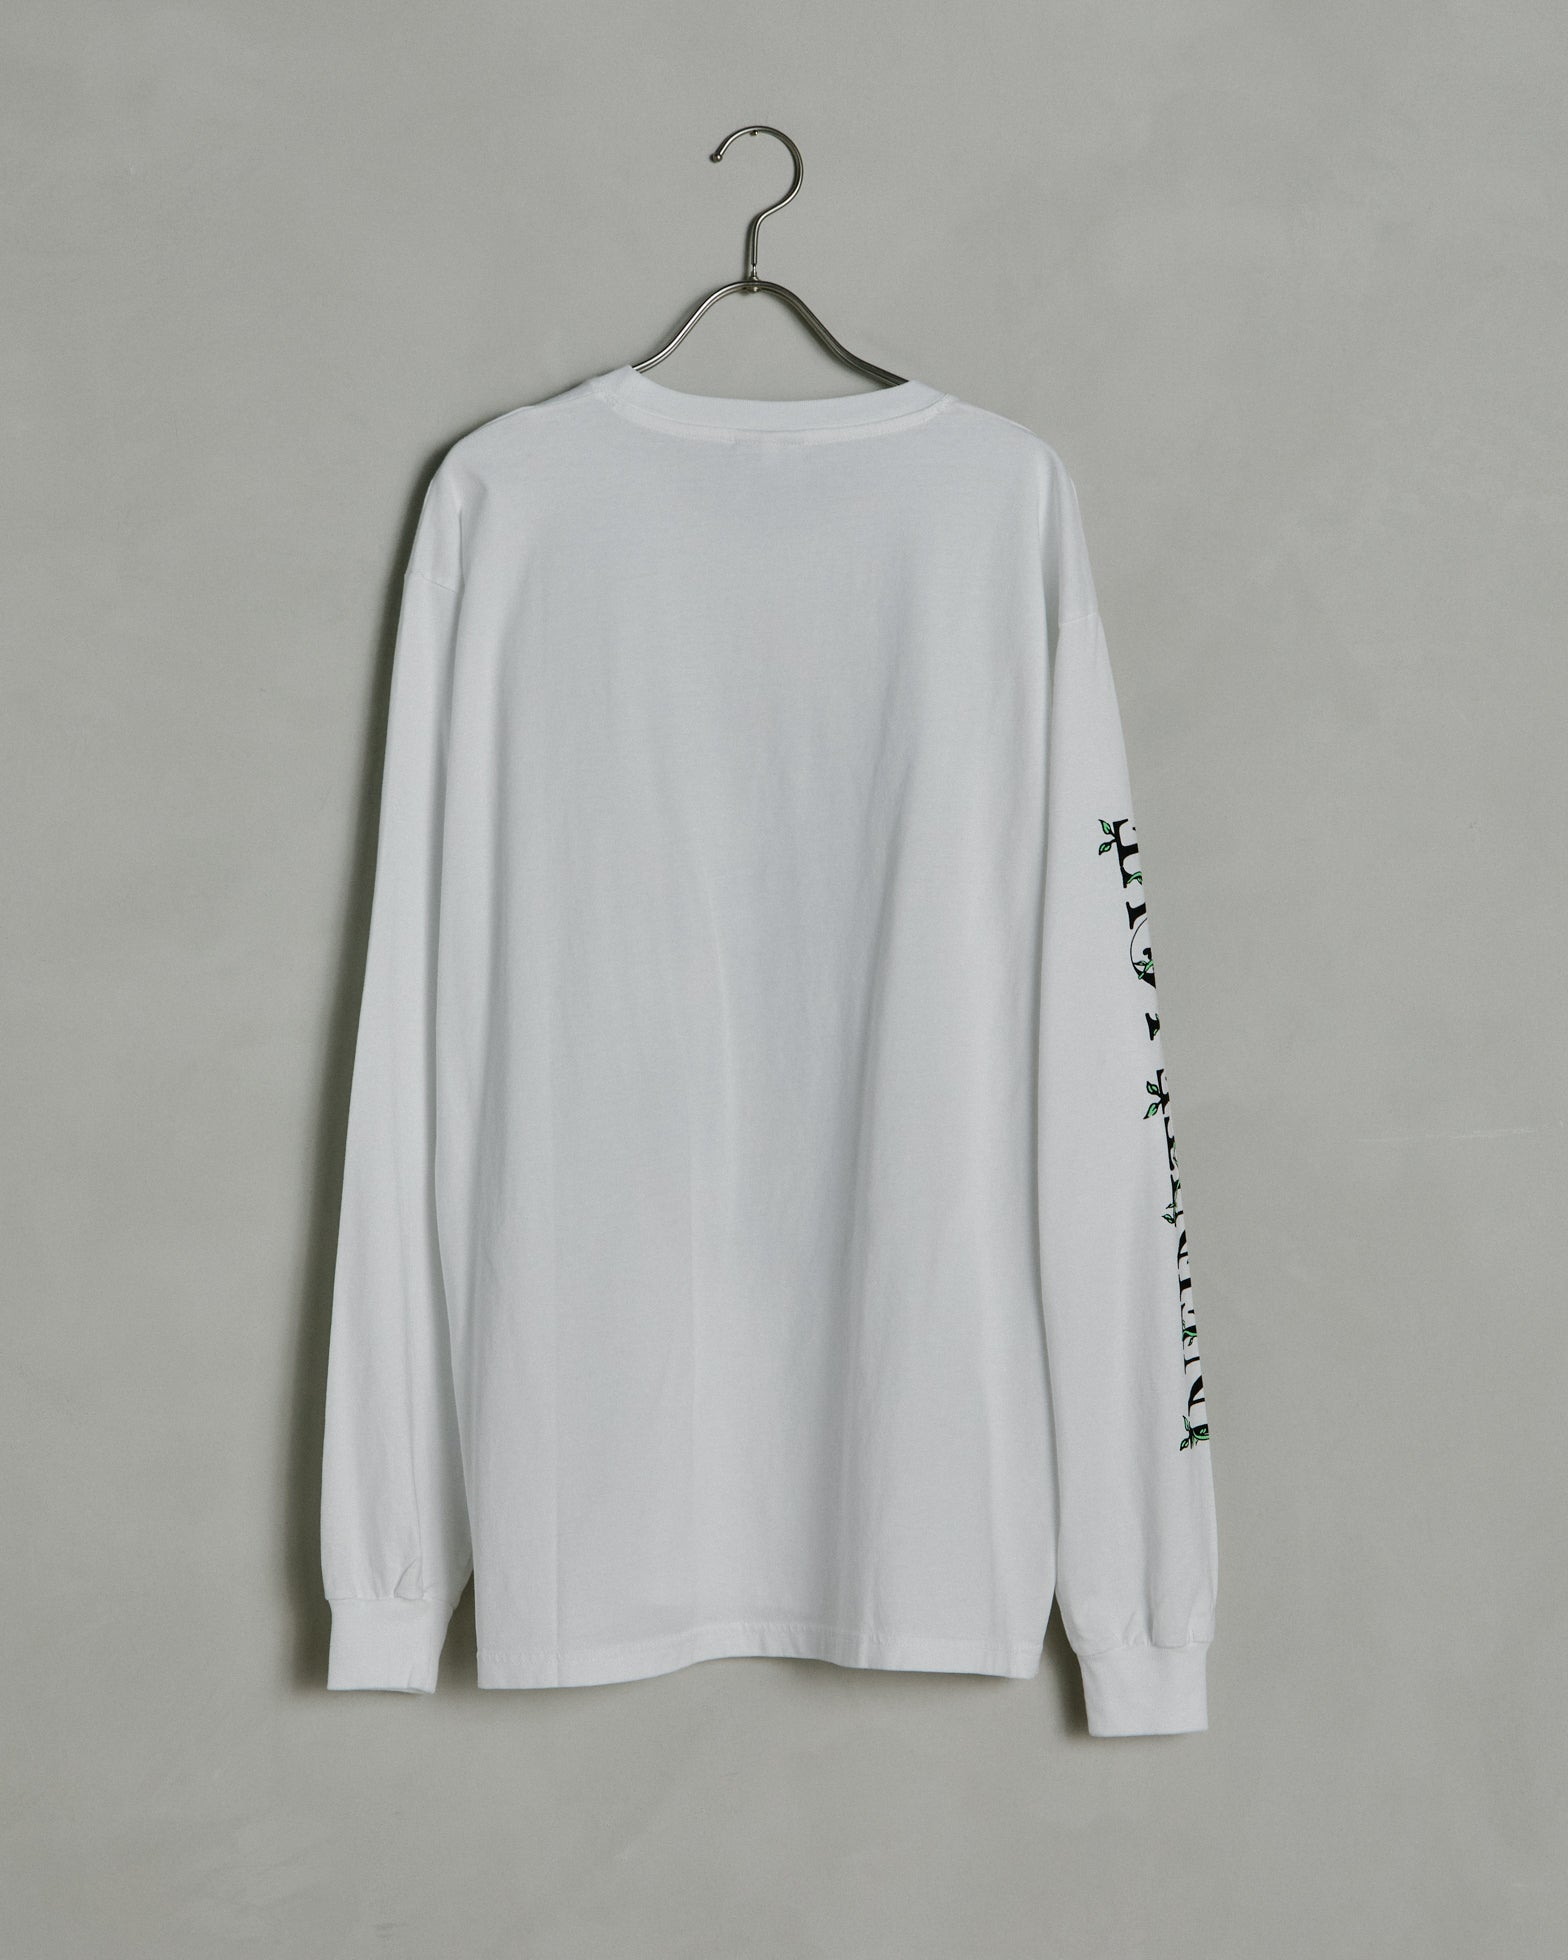 Infinite Love Long Sleeve Tee in White